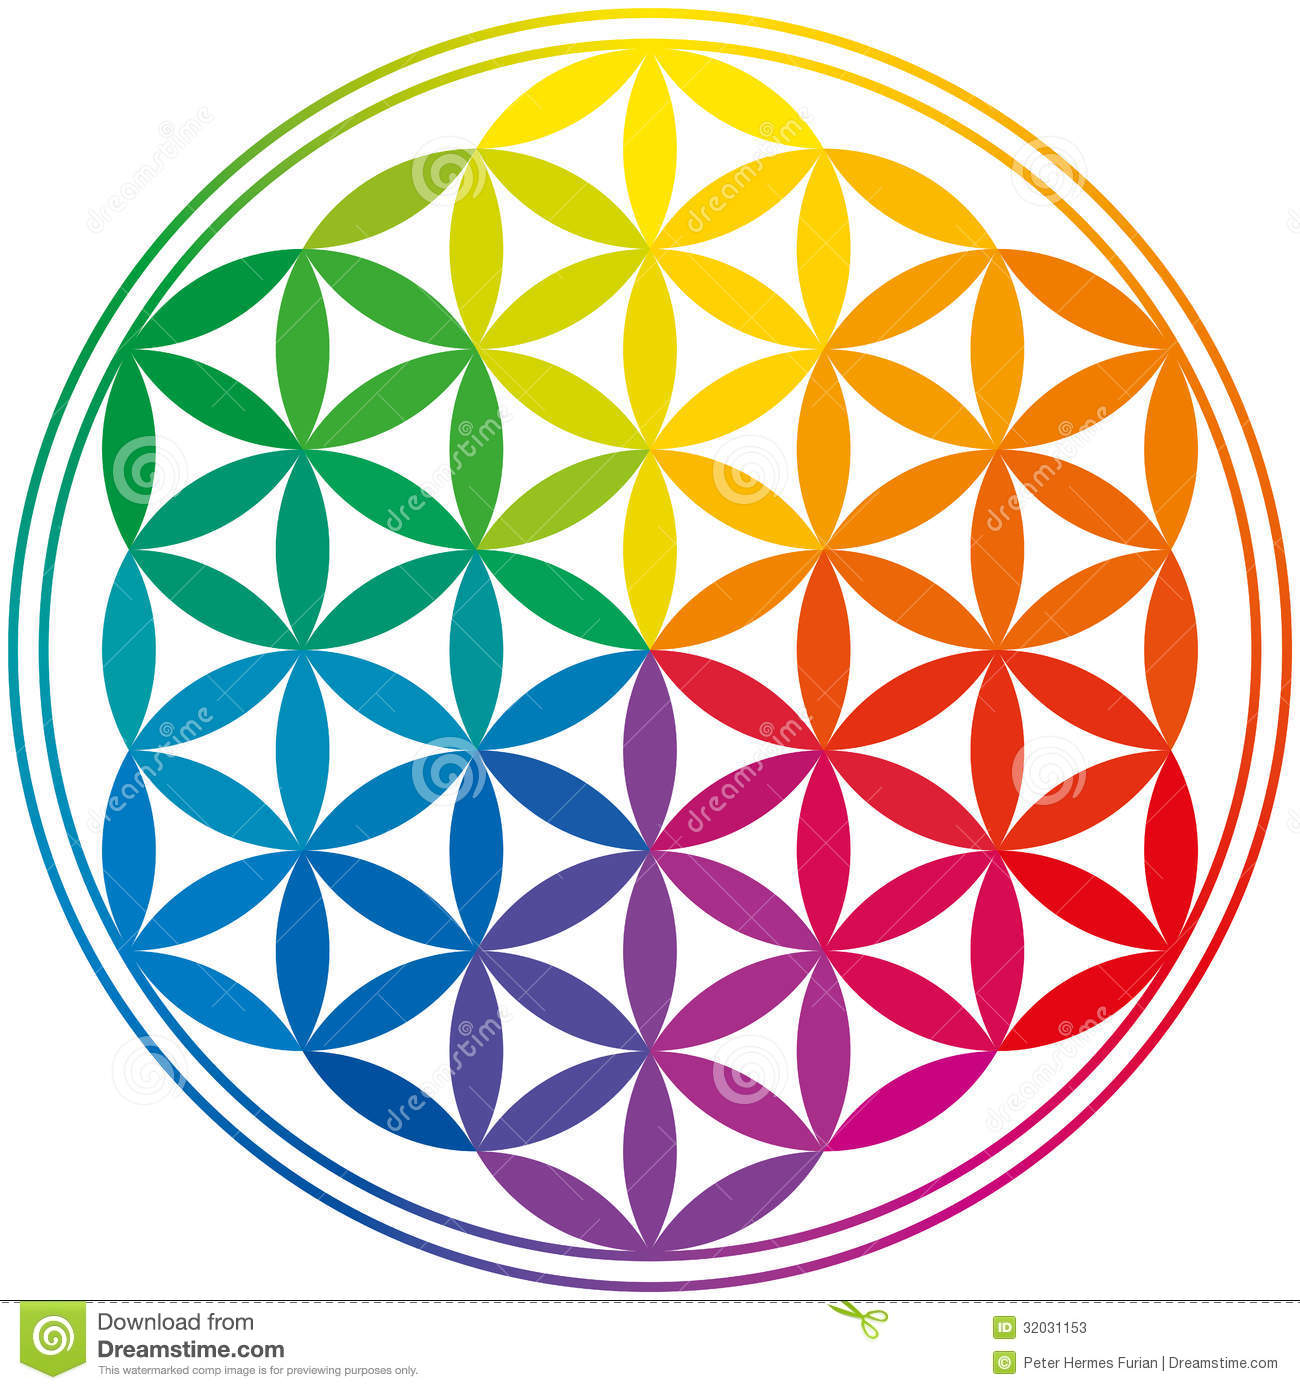 Coloring Flower Of Life : Flower of life rainbow colors stock photos image